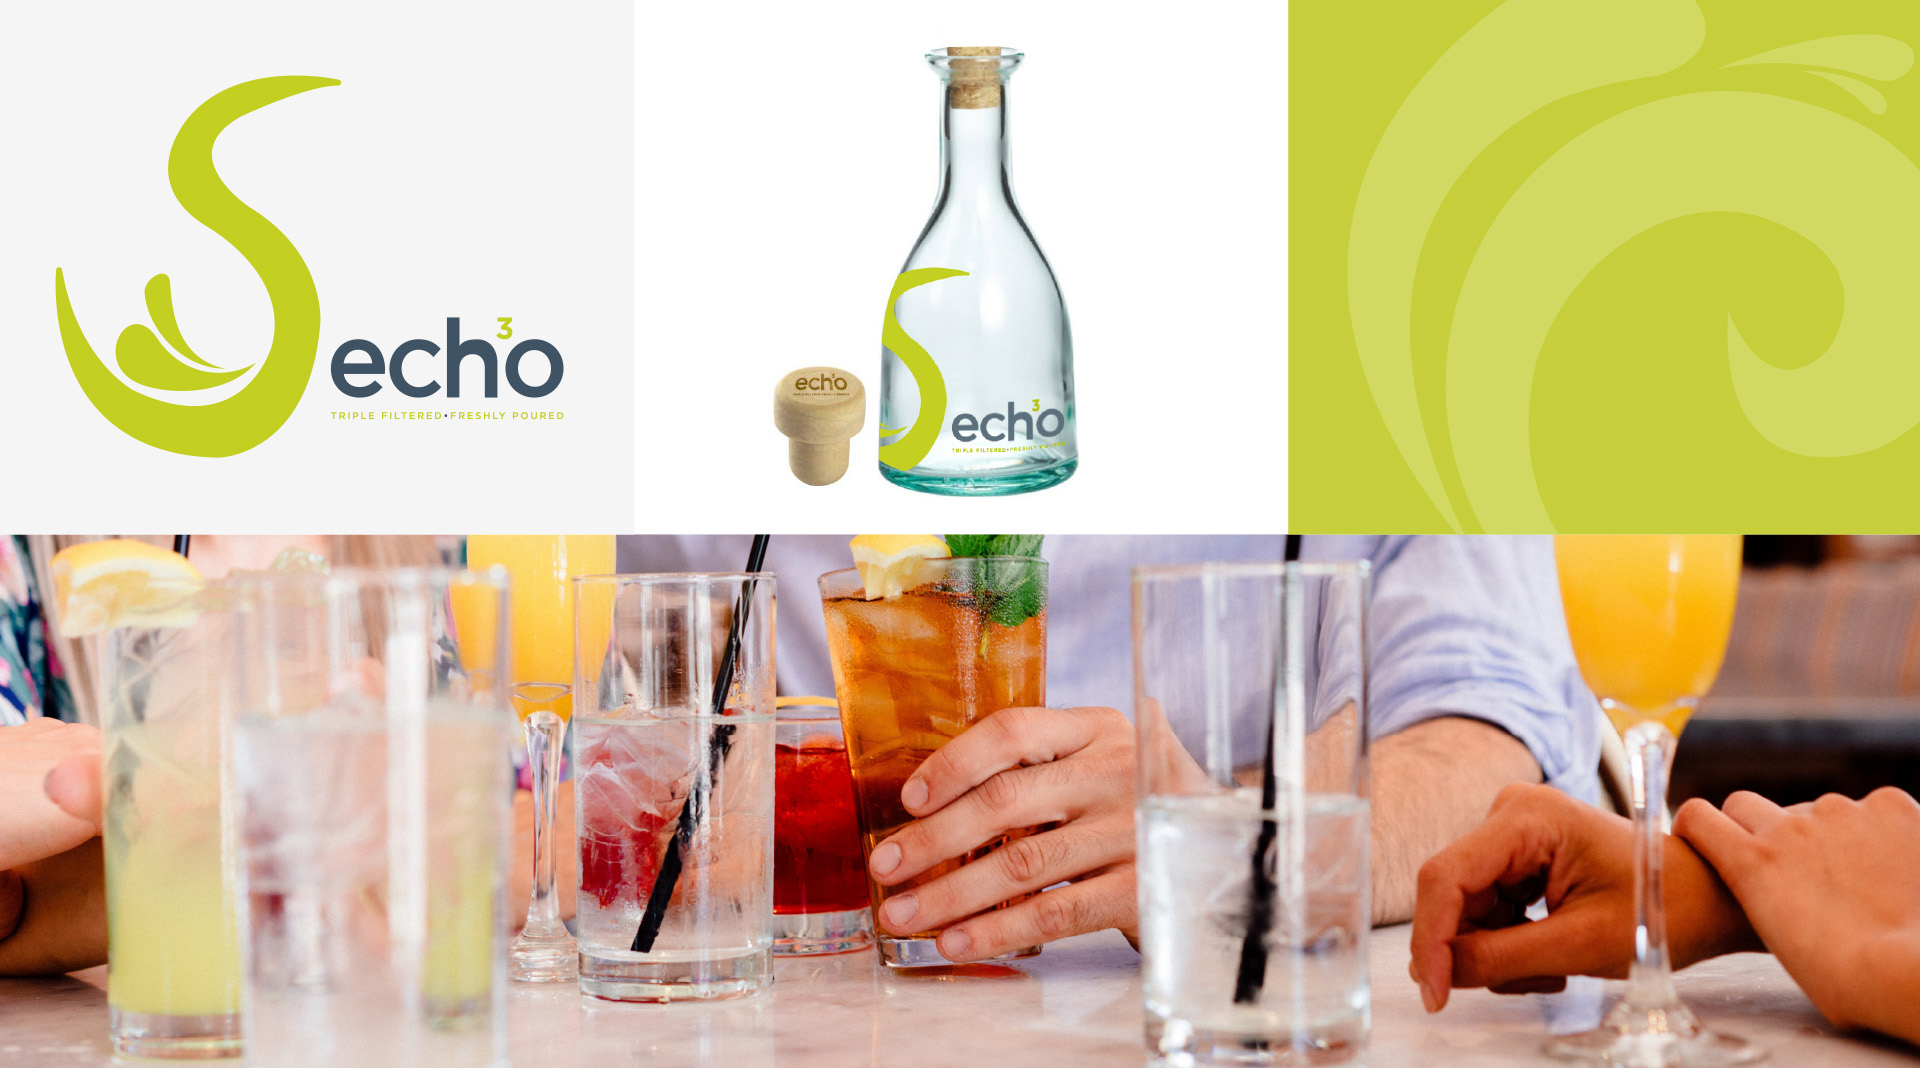 Echo Water branding and bottle design